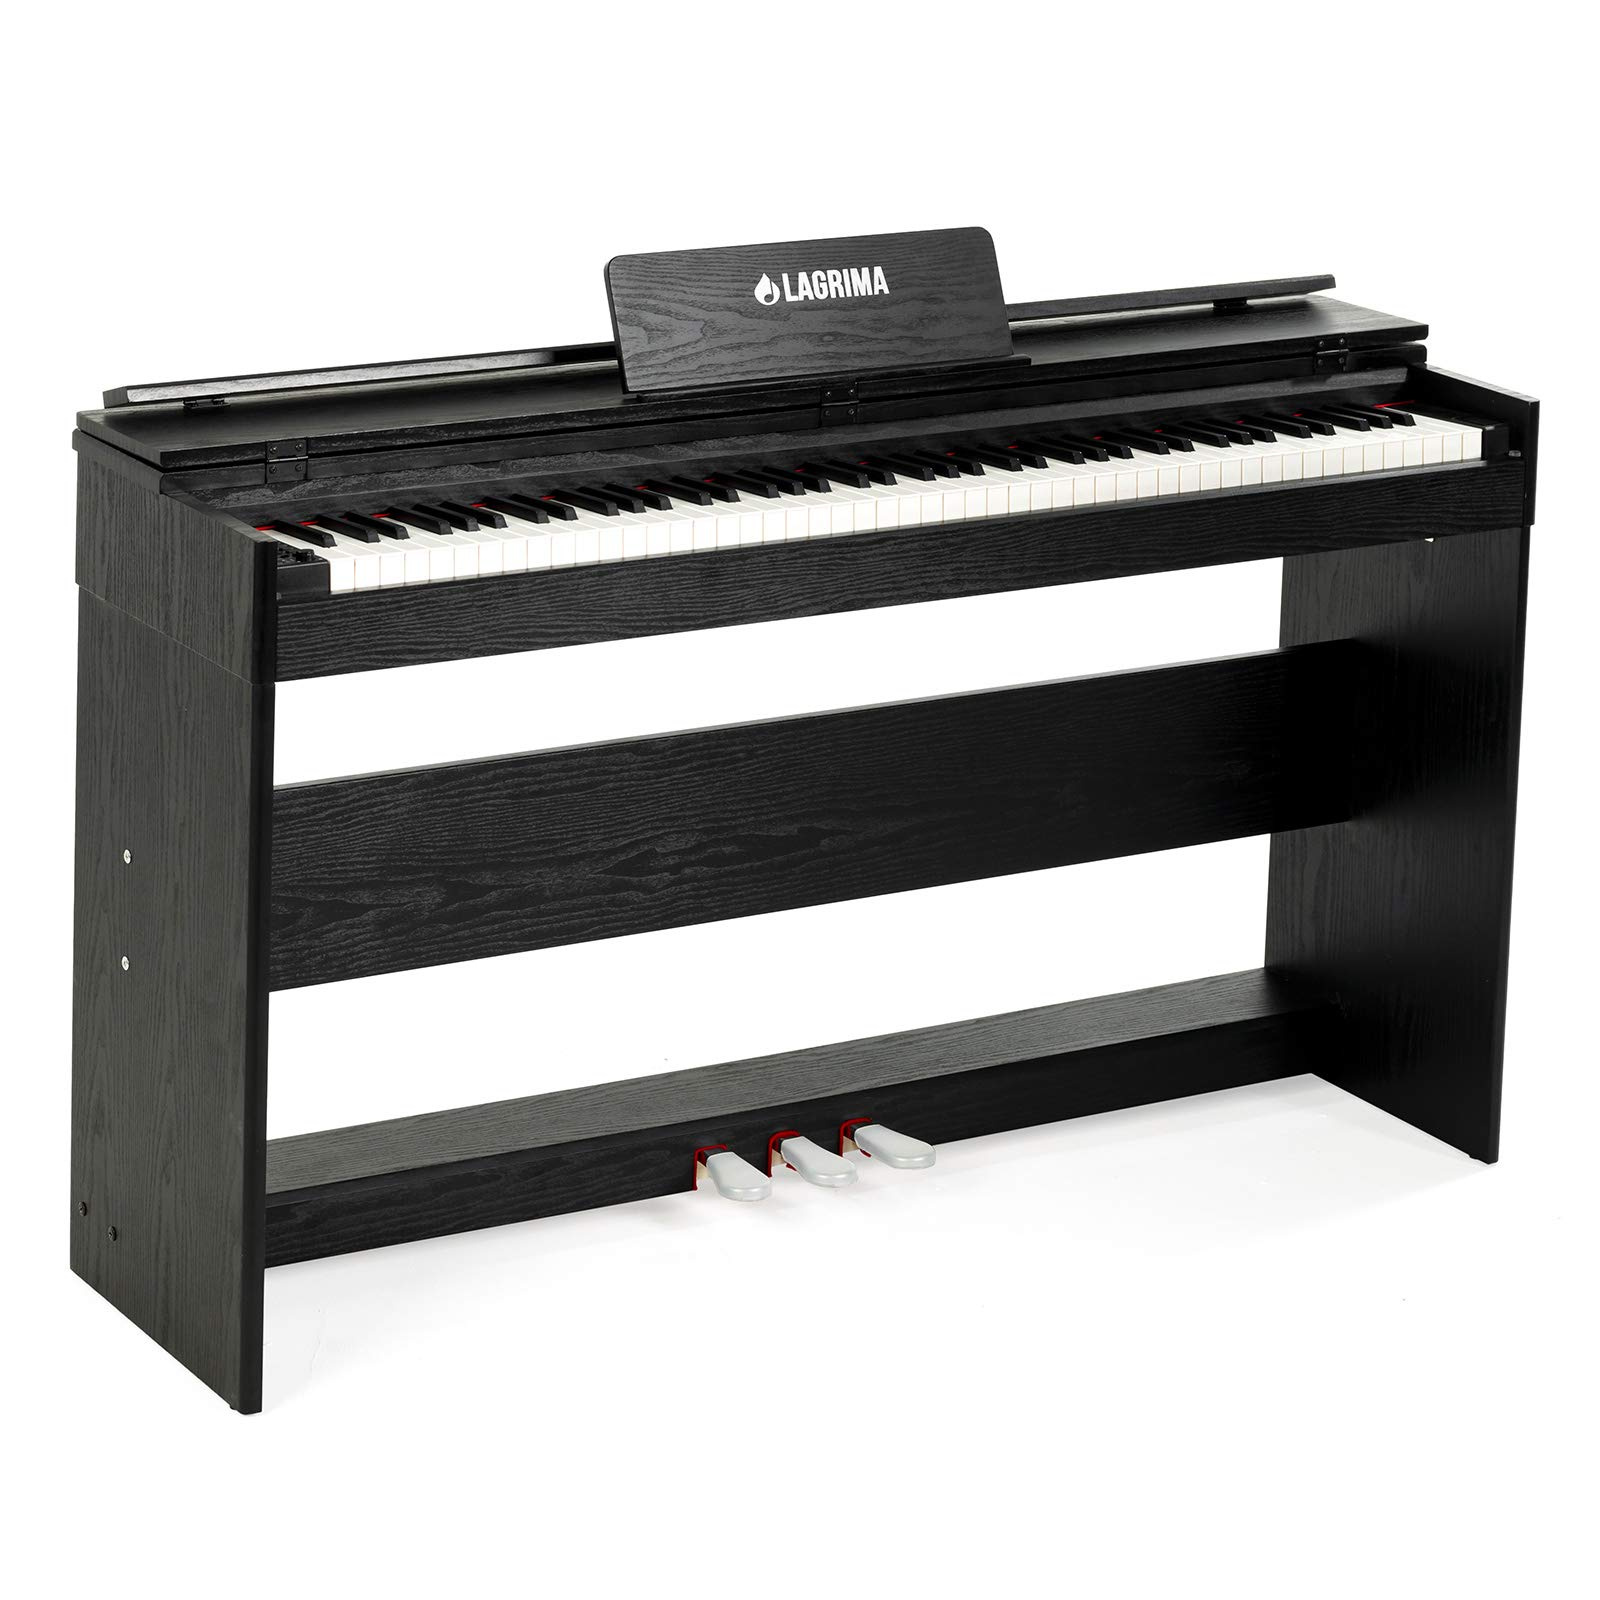 LAGRIMA 88 Weighted Key Digital Piano, USB/MIDI/Headphone/Mic/Audio Output Feature, with Power Supply, 3 Pedals, Instruction Book, Suit for Kids, Teen, Adult, Beginner or Training Institution by LAGRIMA